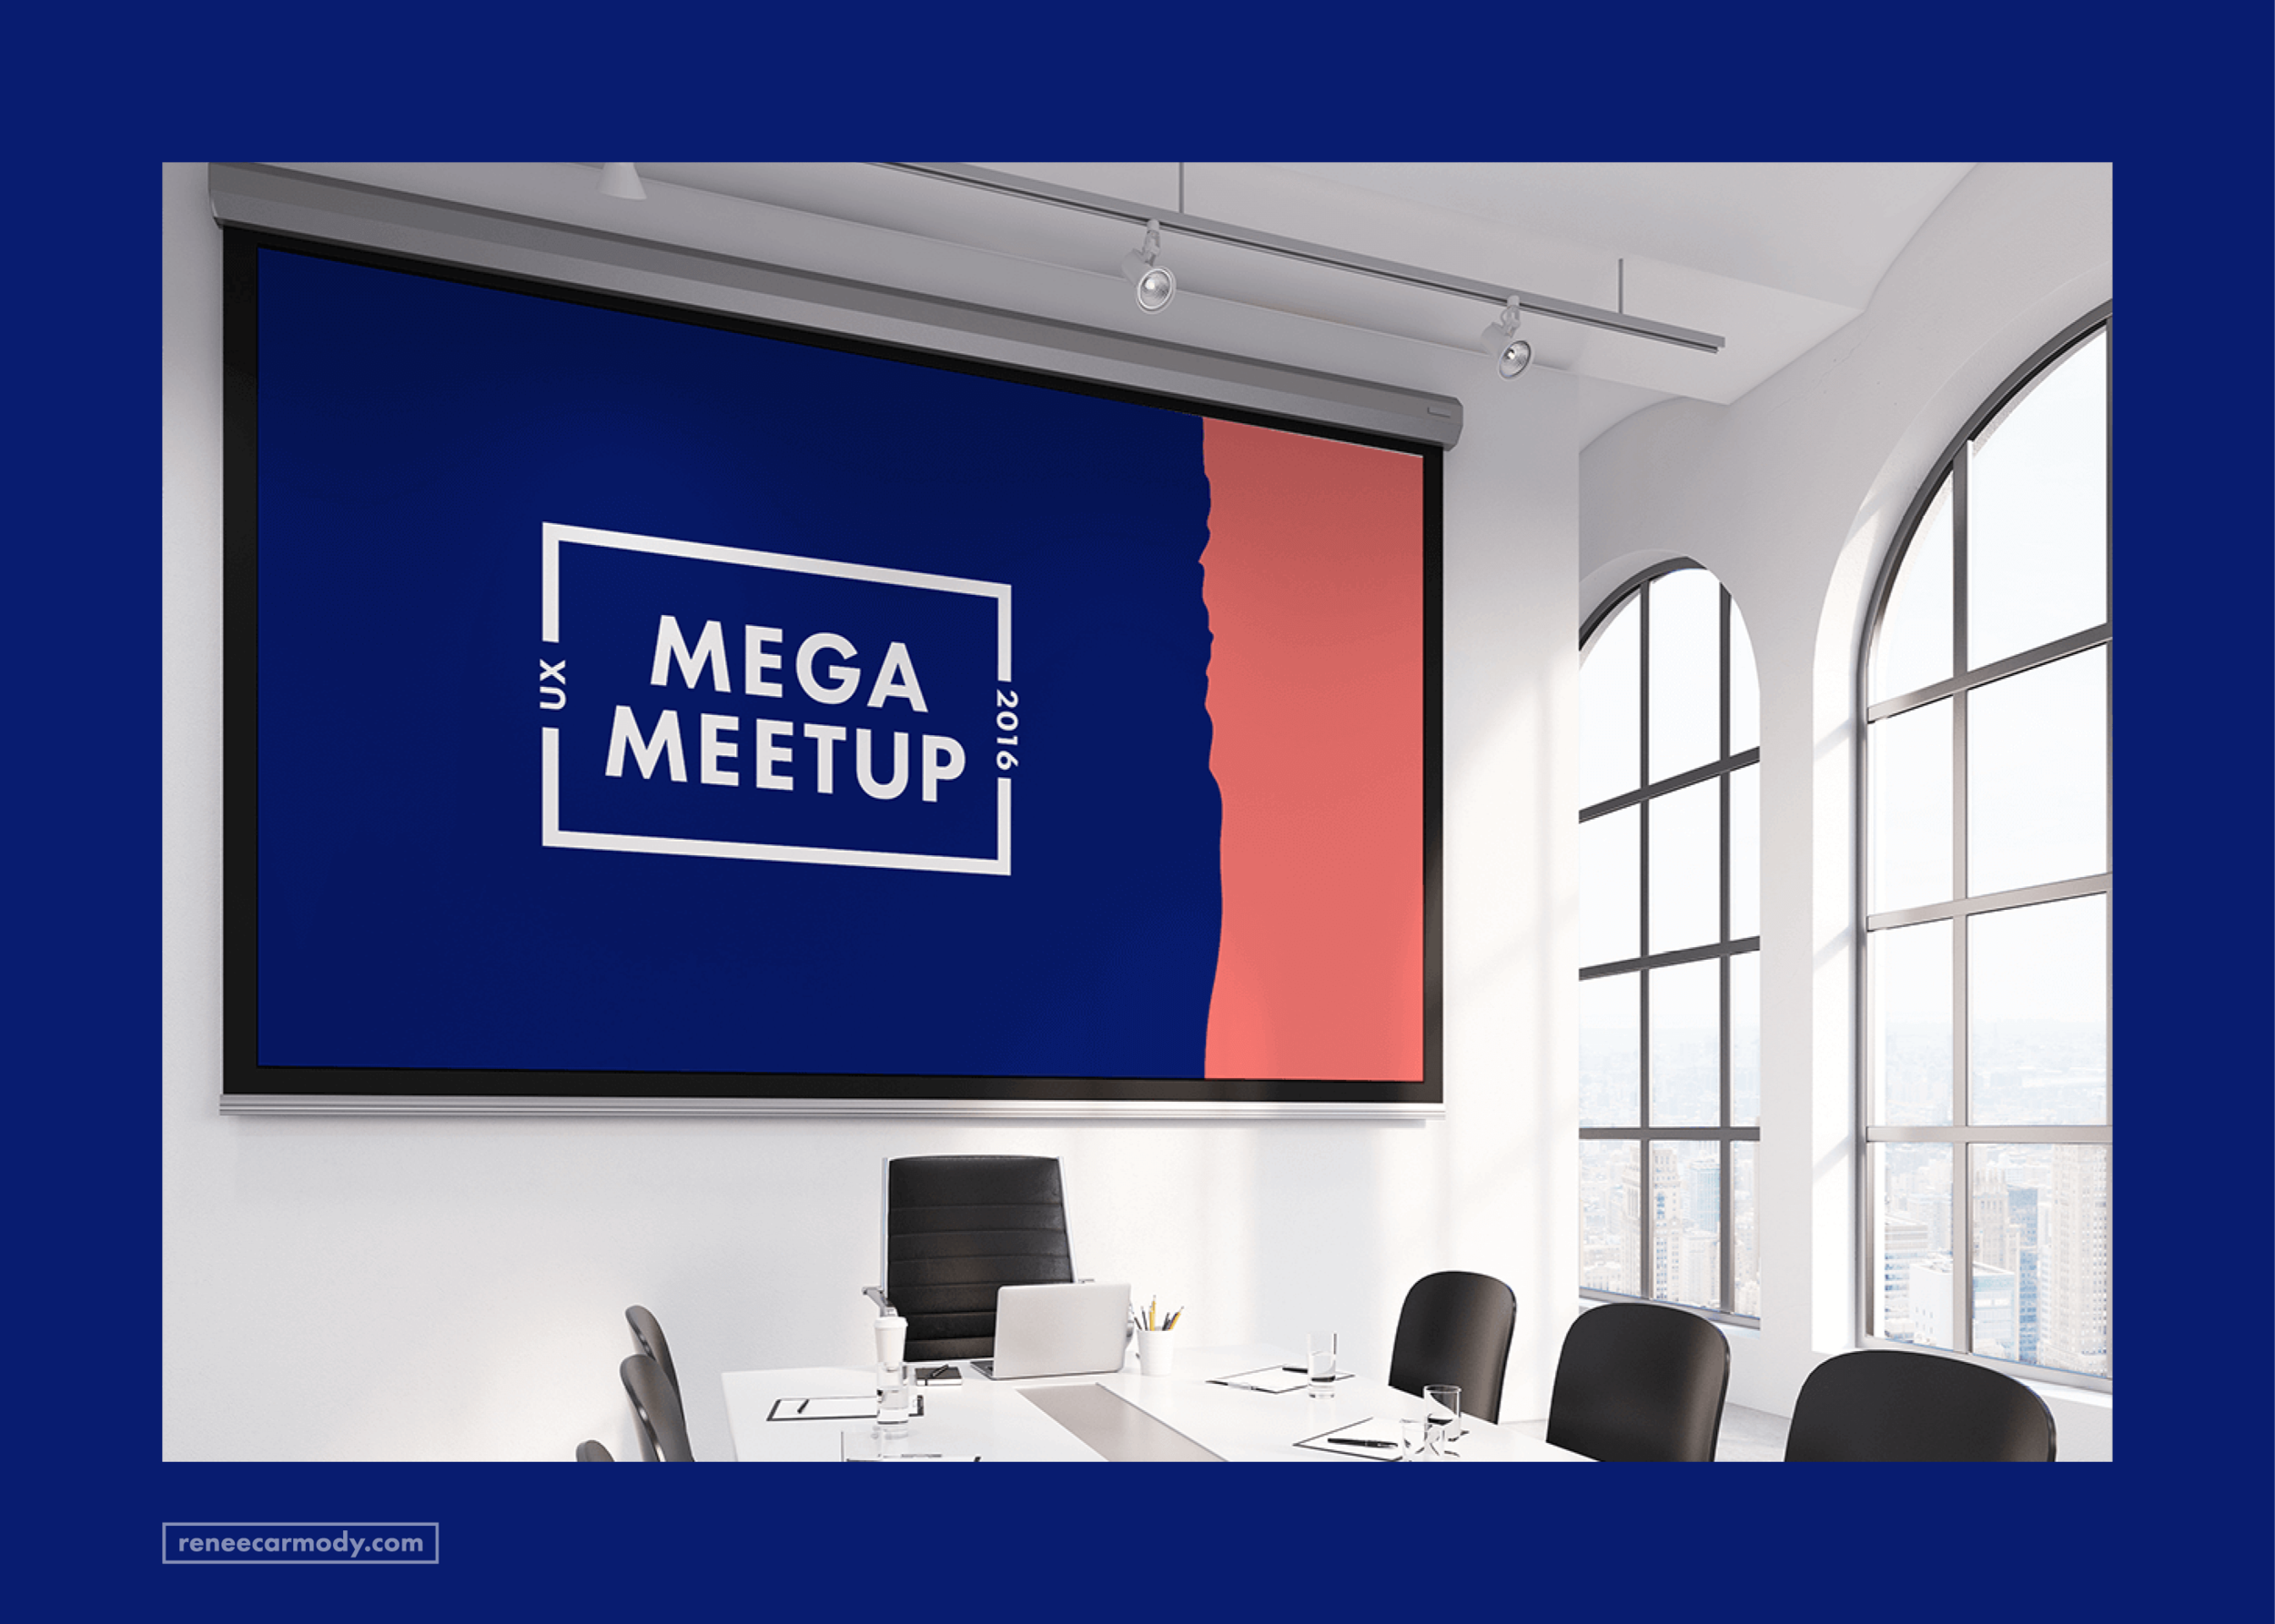 Logo and brand design for Mega Meetup by Renée Carmody Design. reneecarmody.com